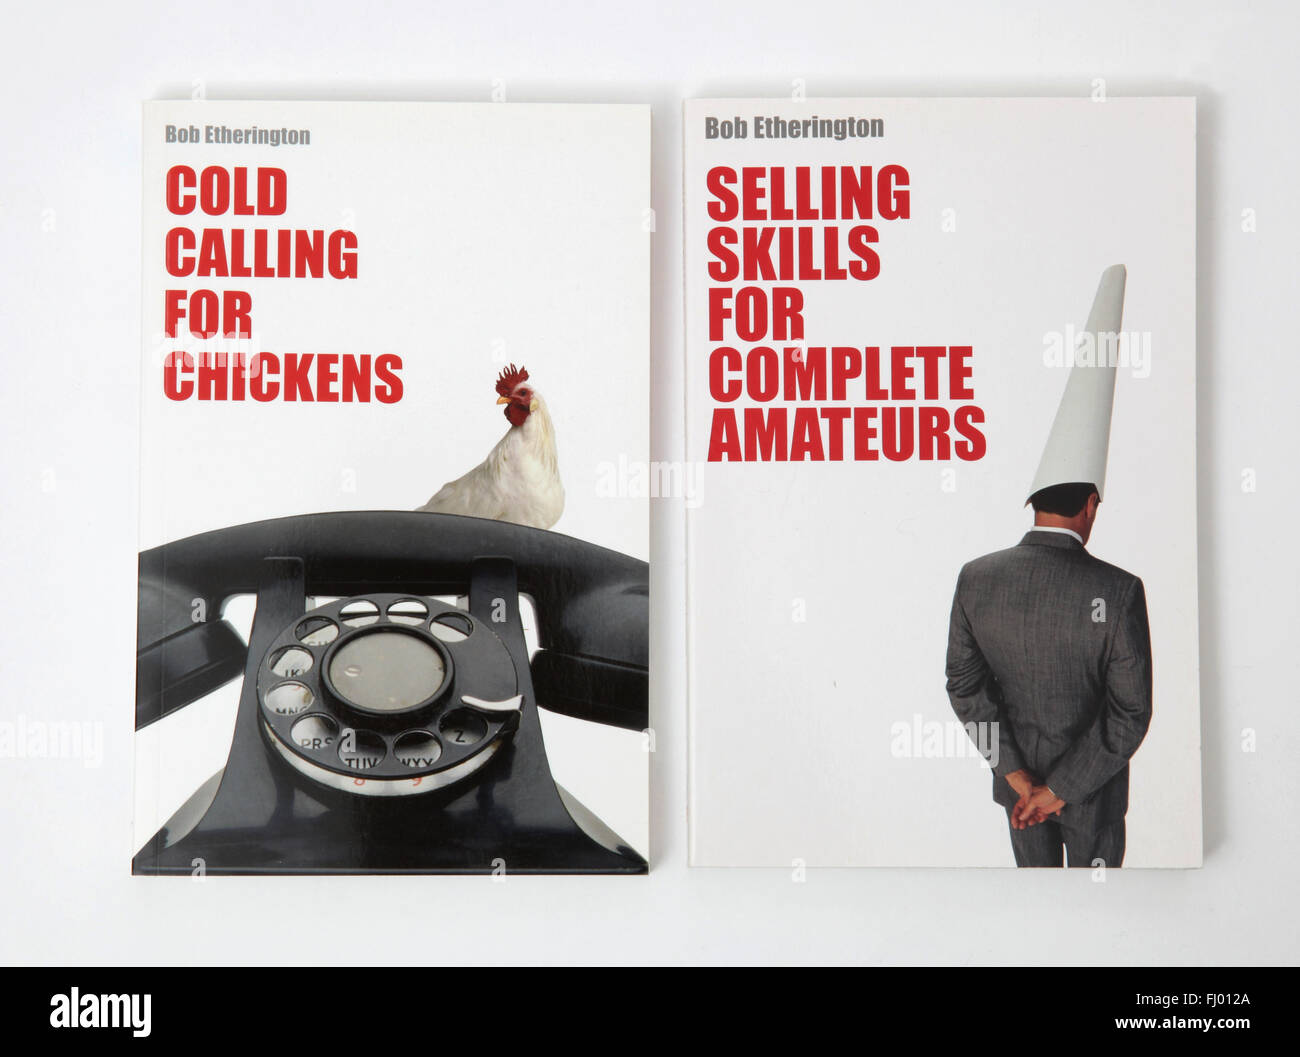 two books cold calling for chickens and selling skills for stock photo two books cold calling for chickens and selling skills for complete amateurs by bob etherington